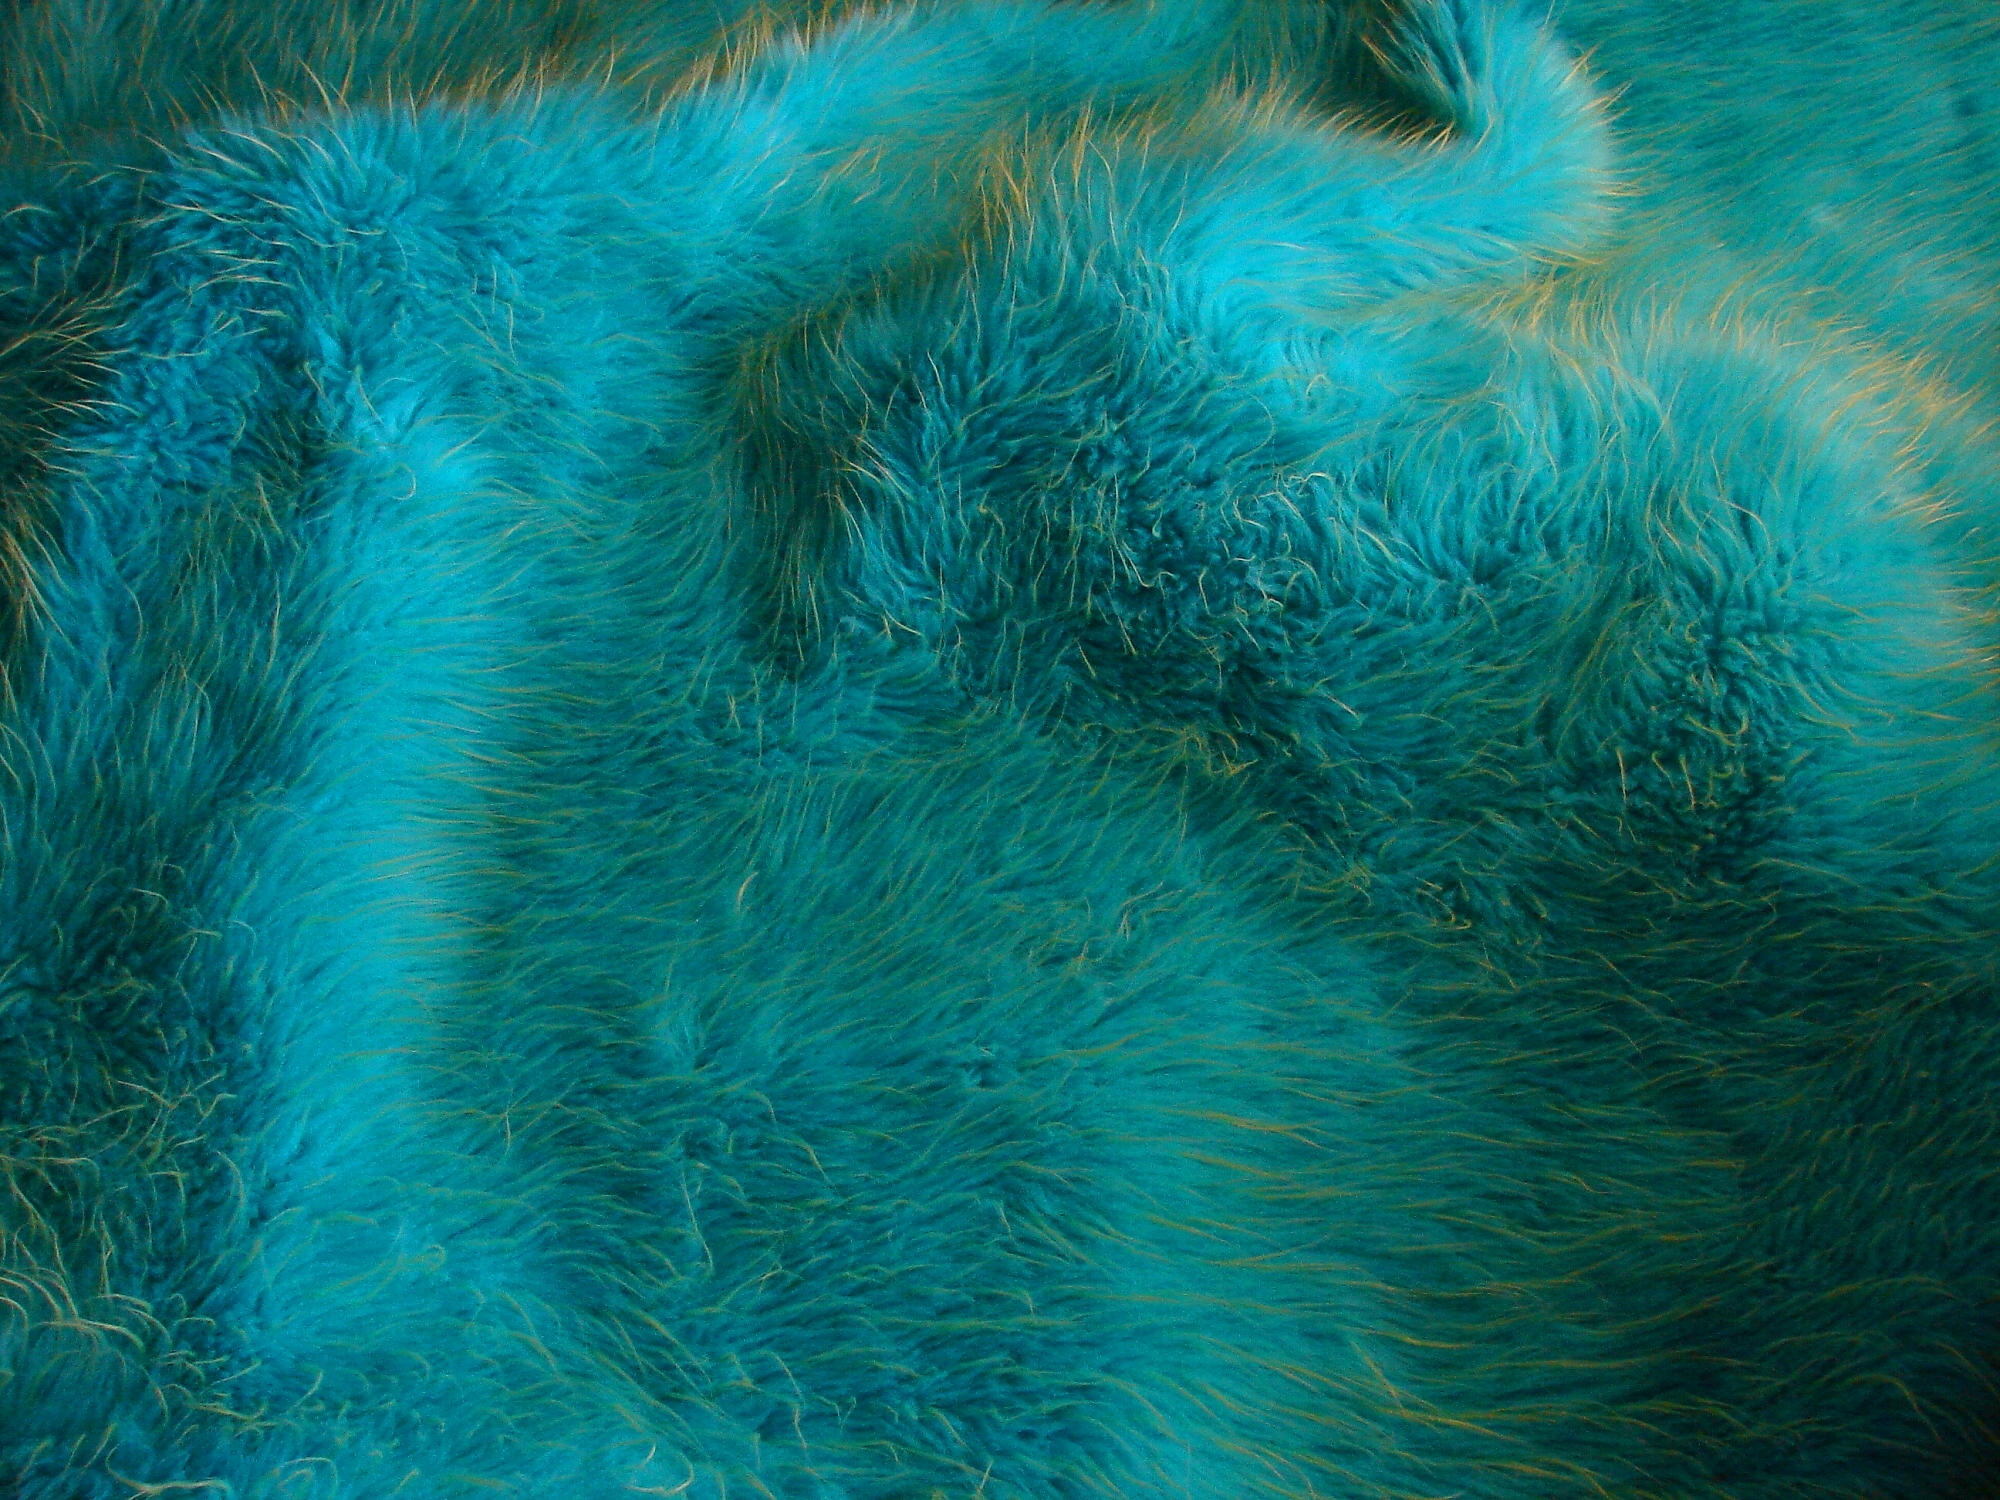 Blue and Green Fur Texture 1 by FantasyStock